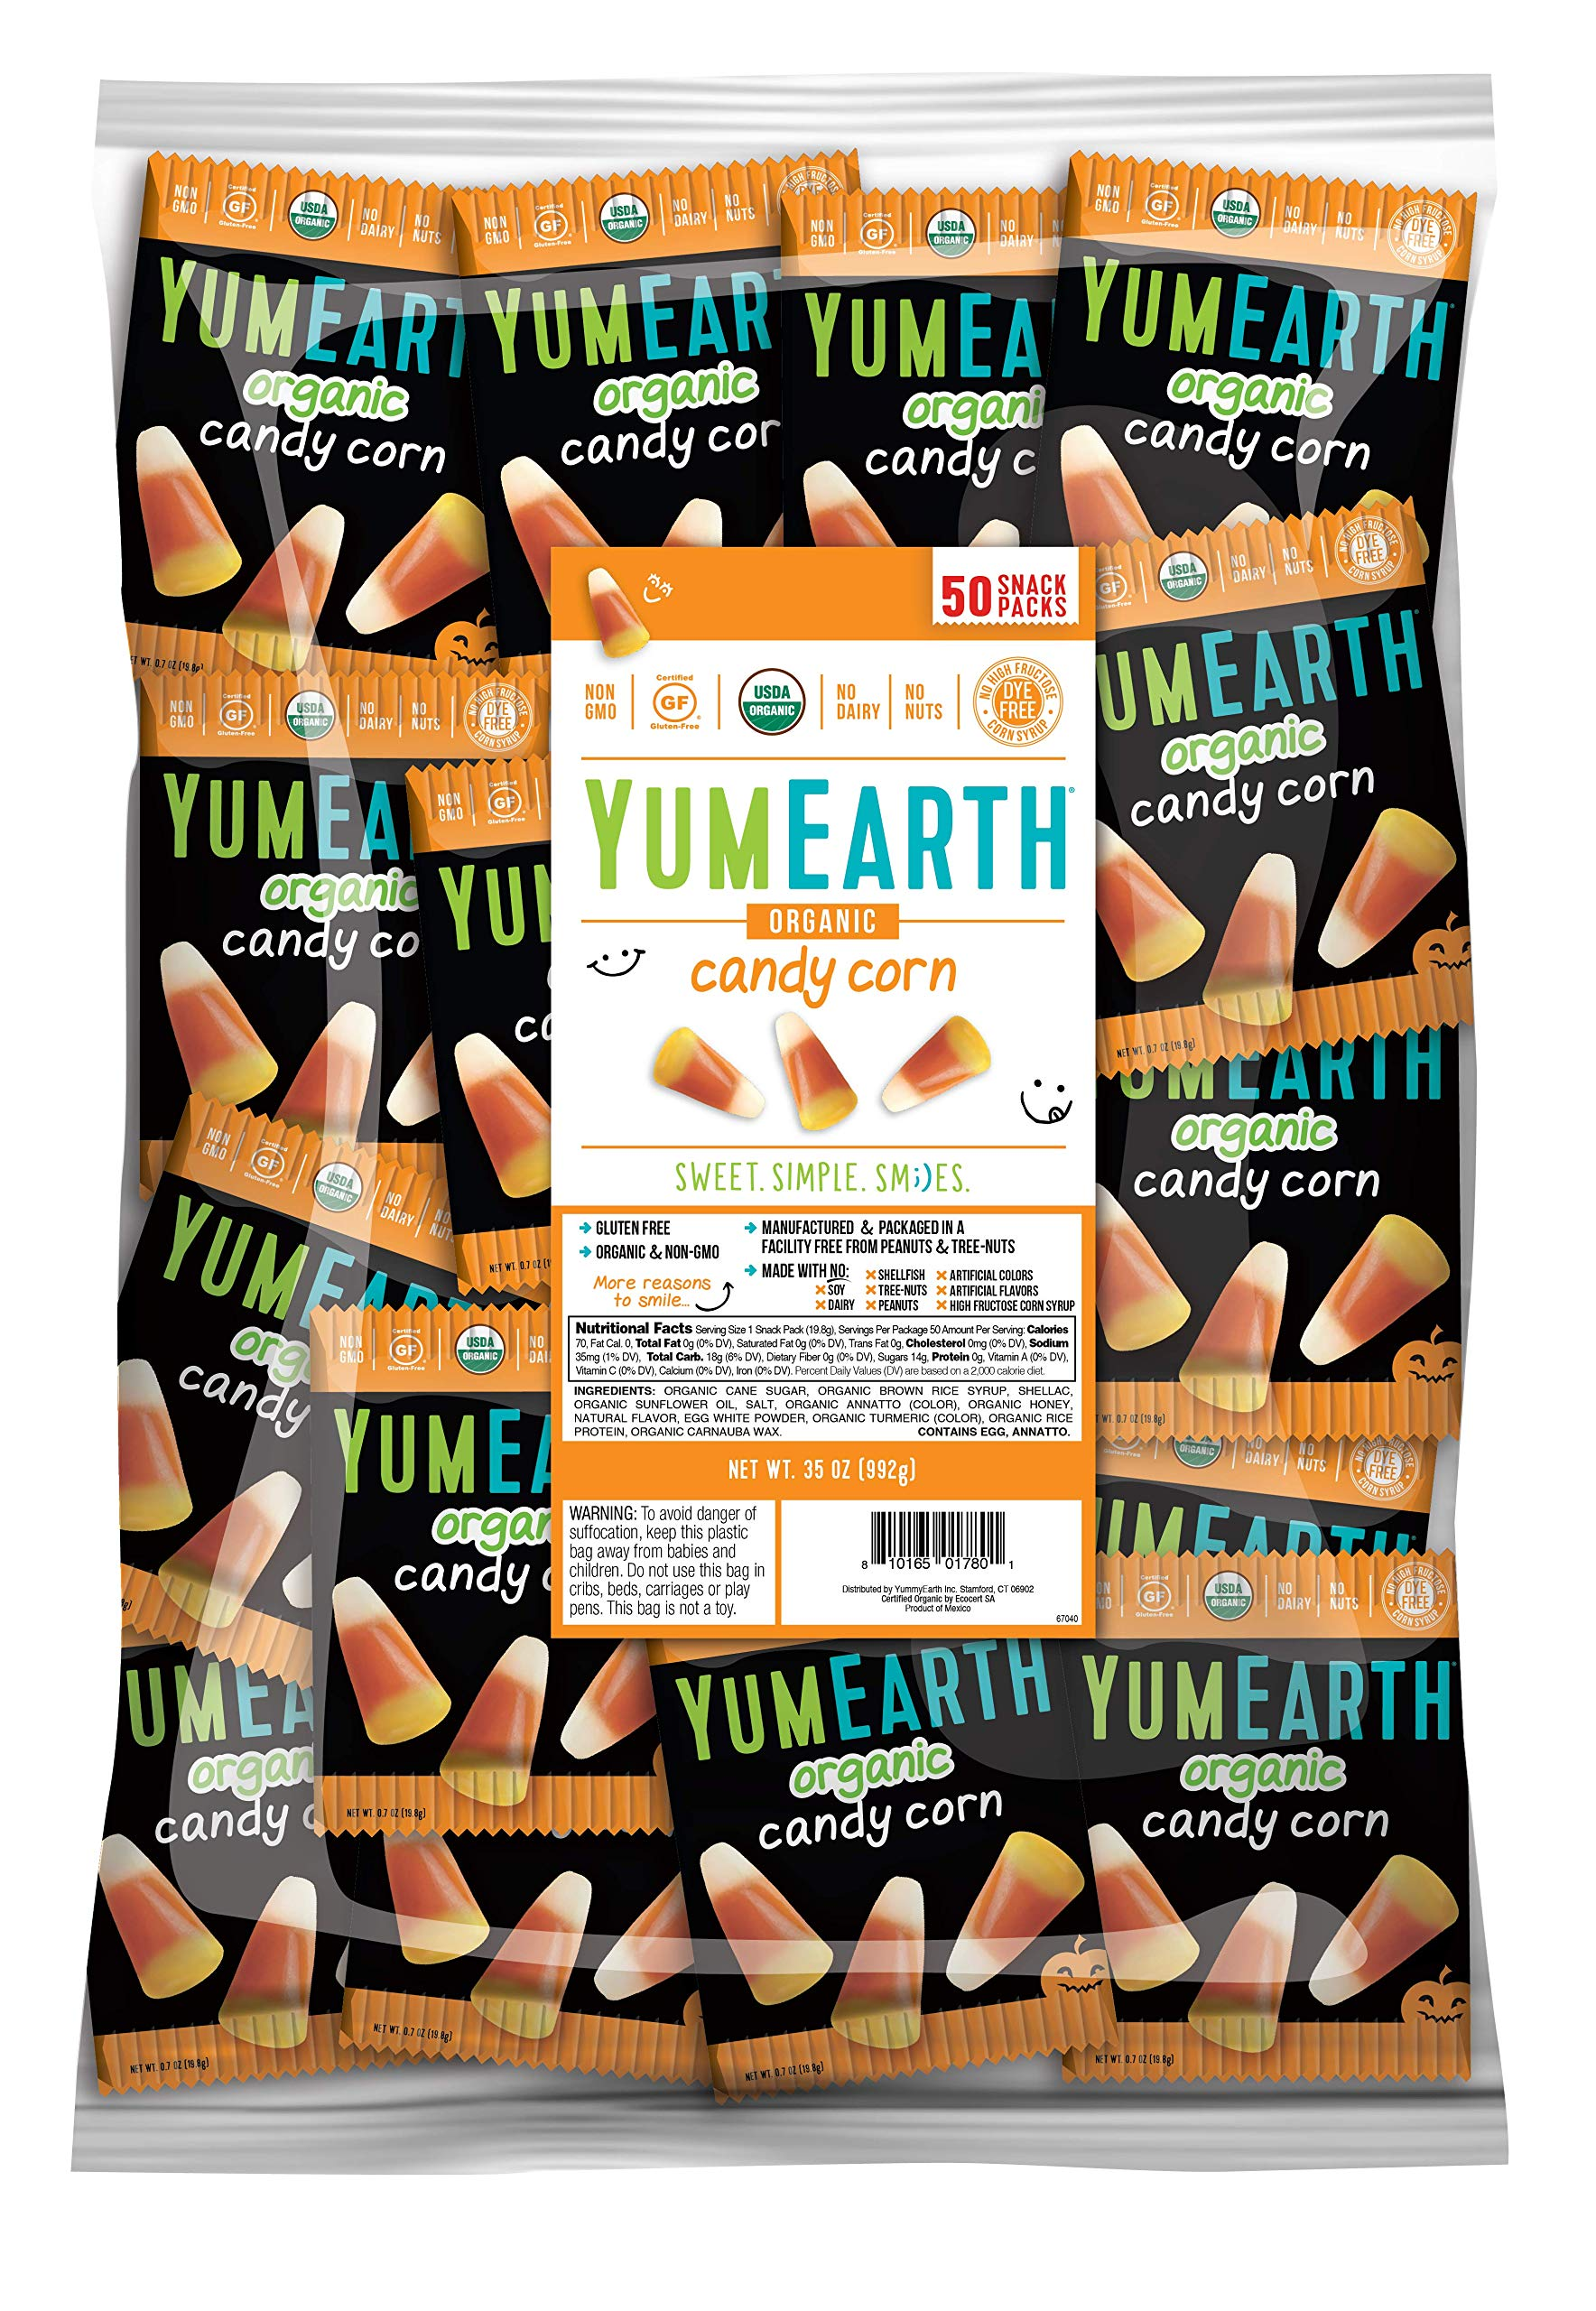 YumEarth Organic Gluten Free Candy Corn 0.7 Ounce Snack Packs, 50 Count